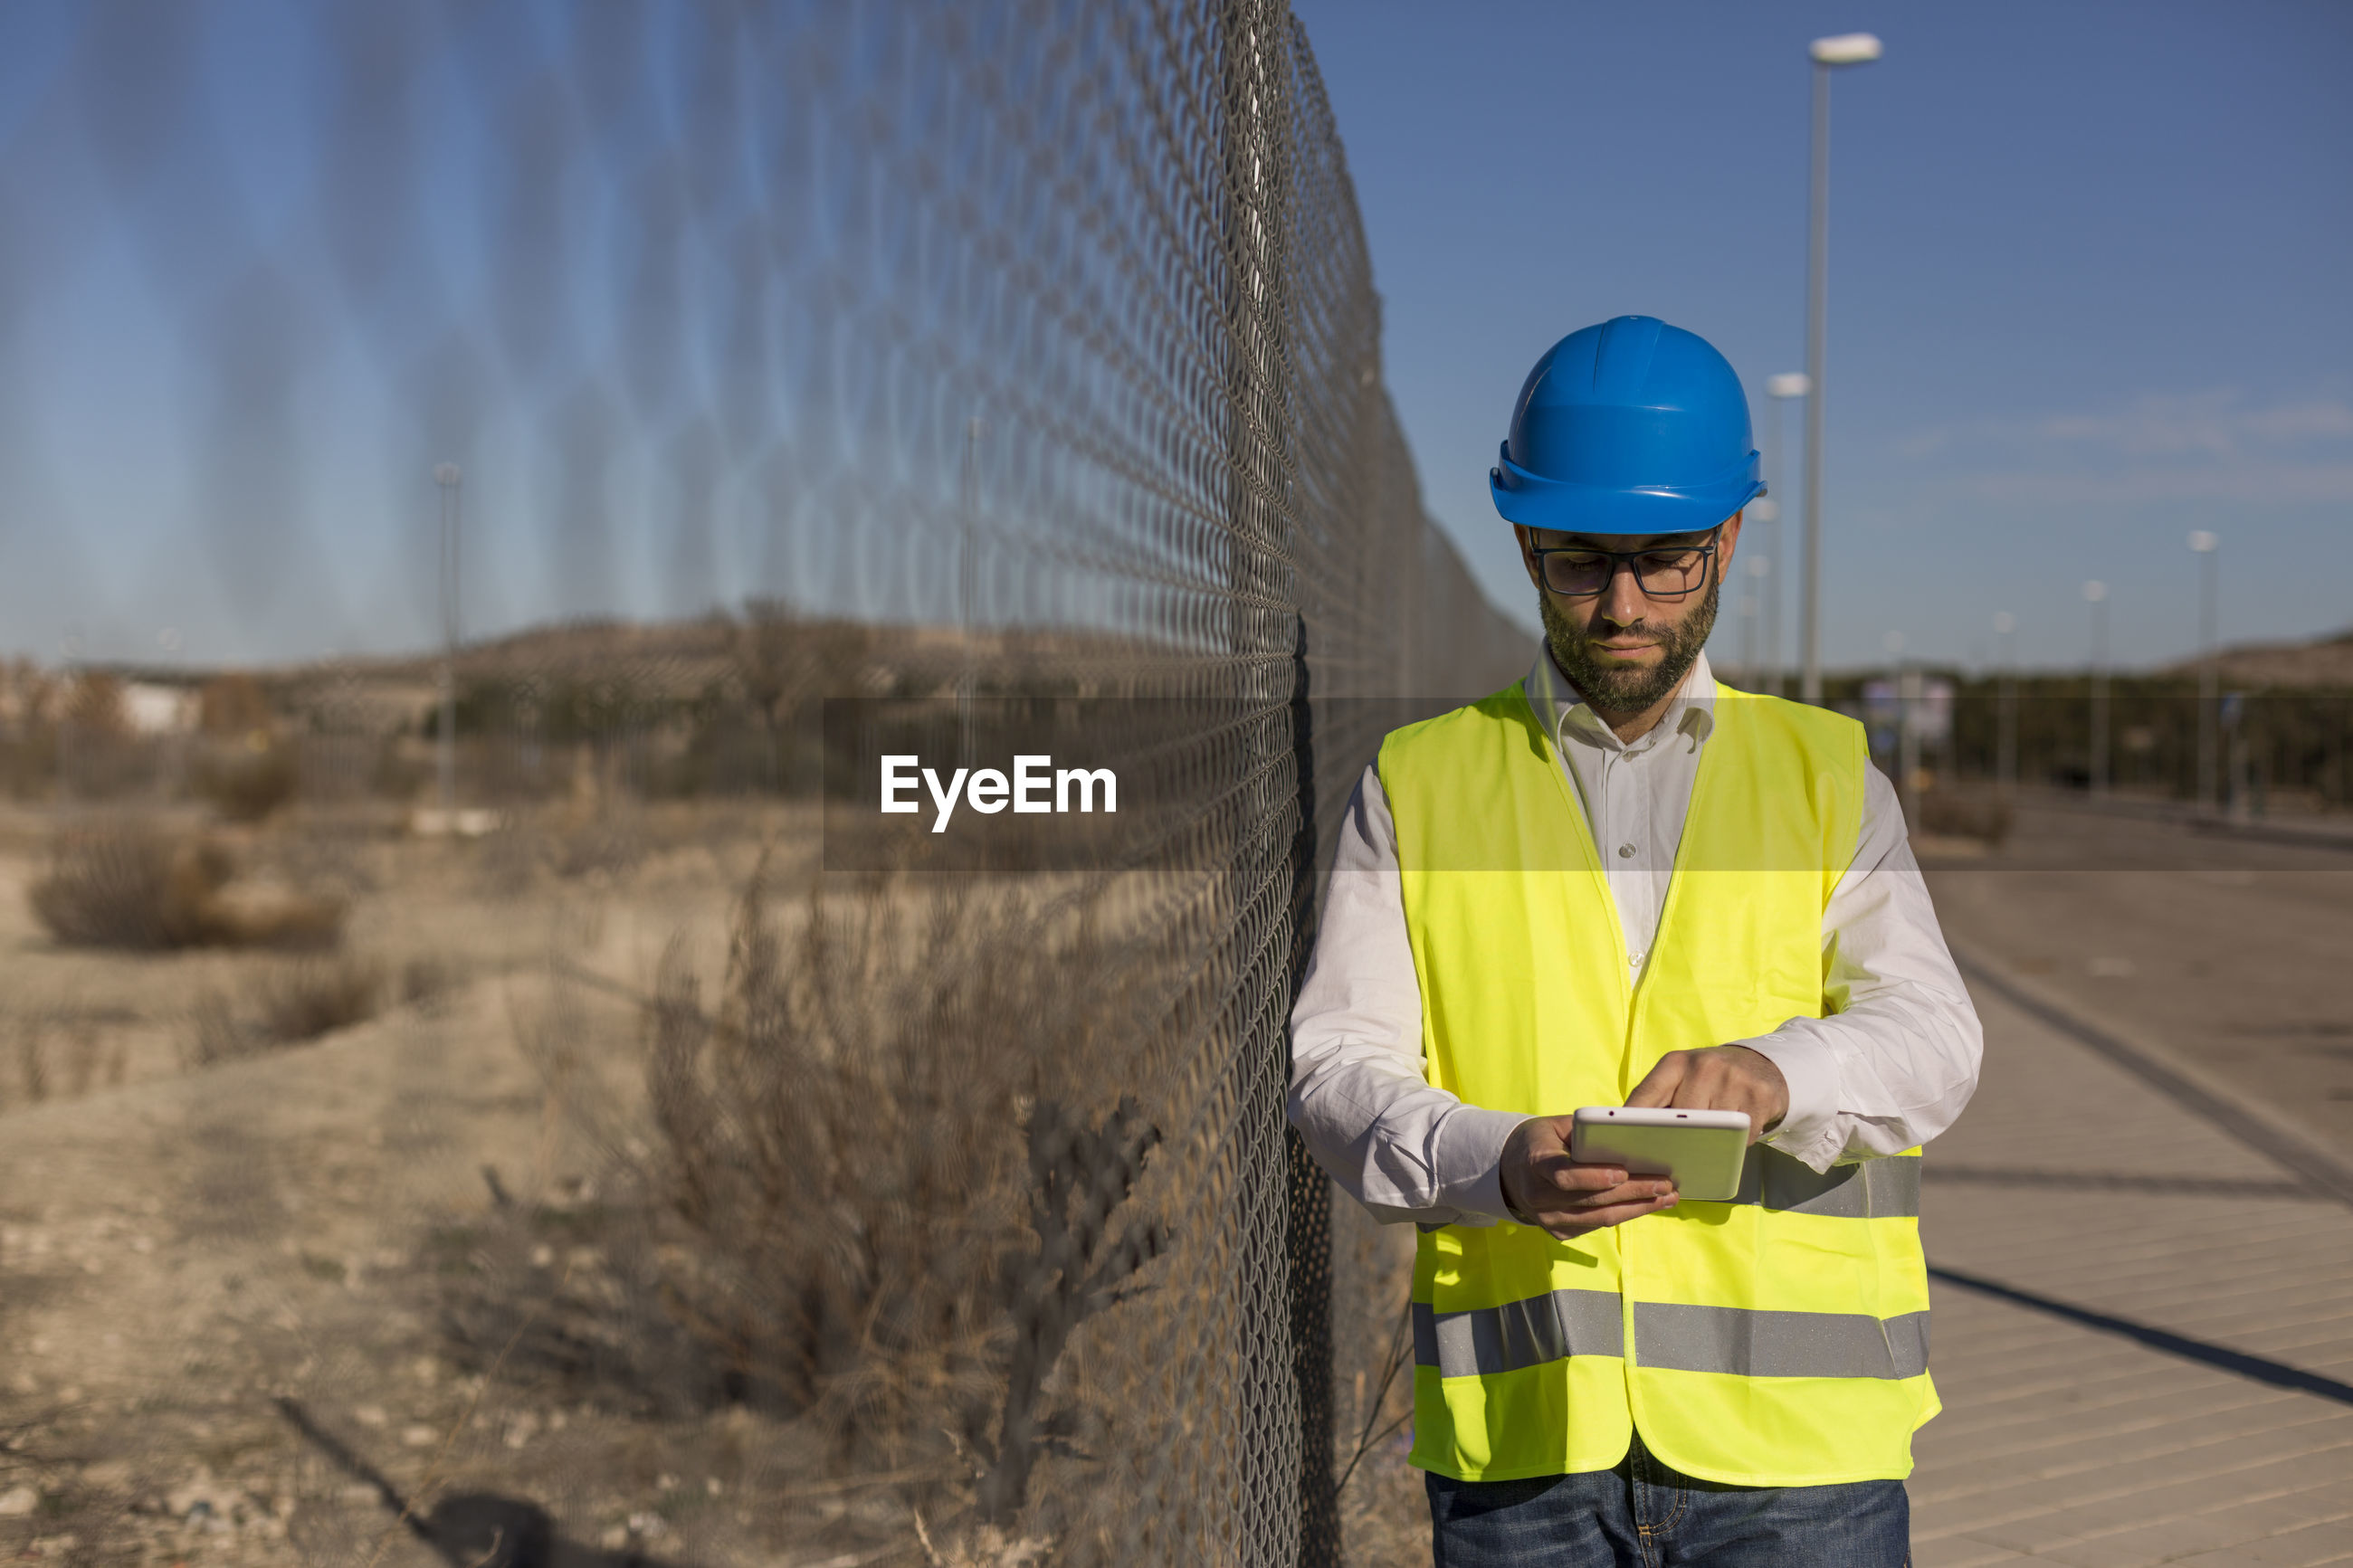 Engineer using digital tablet standing by chainink fence at construction site